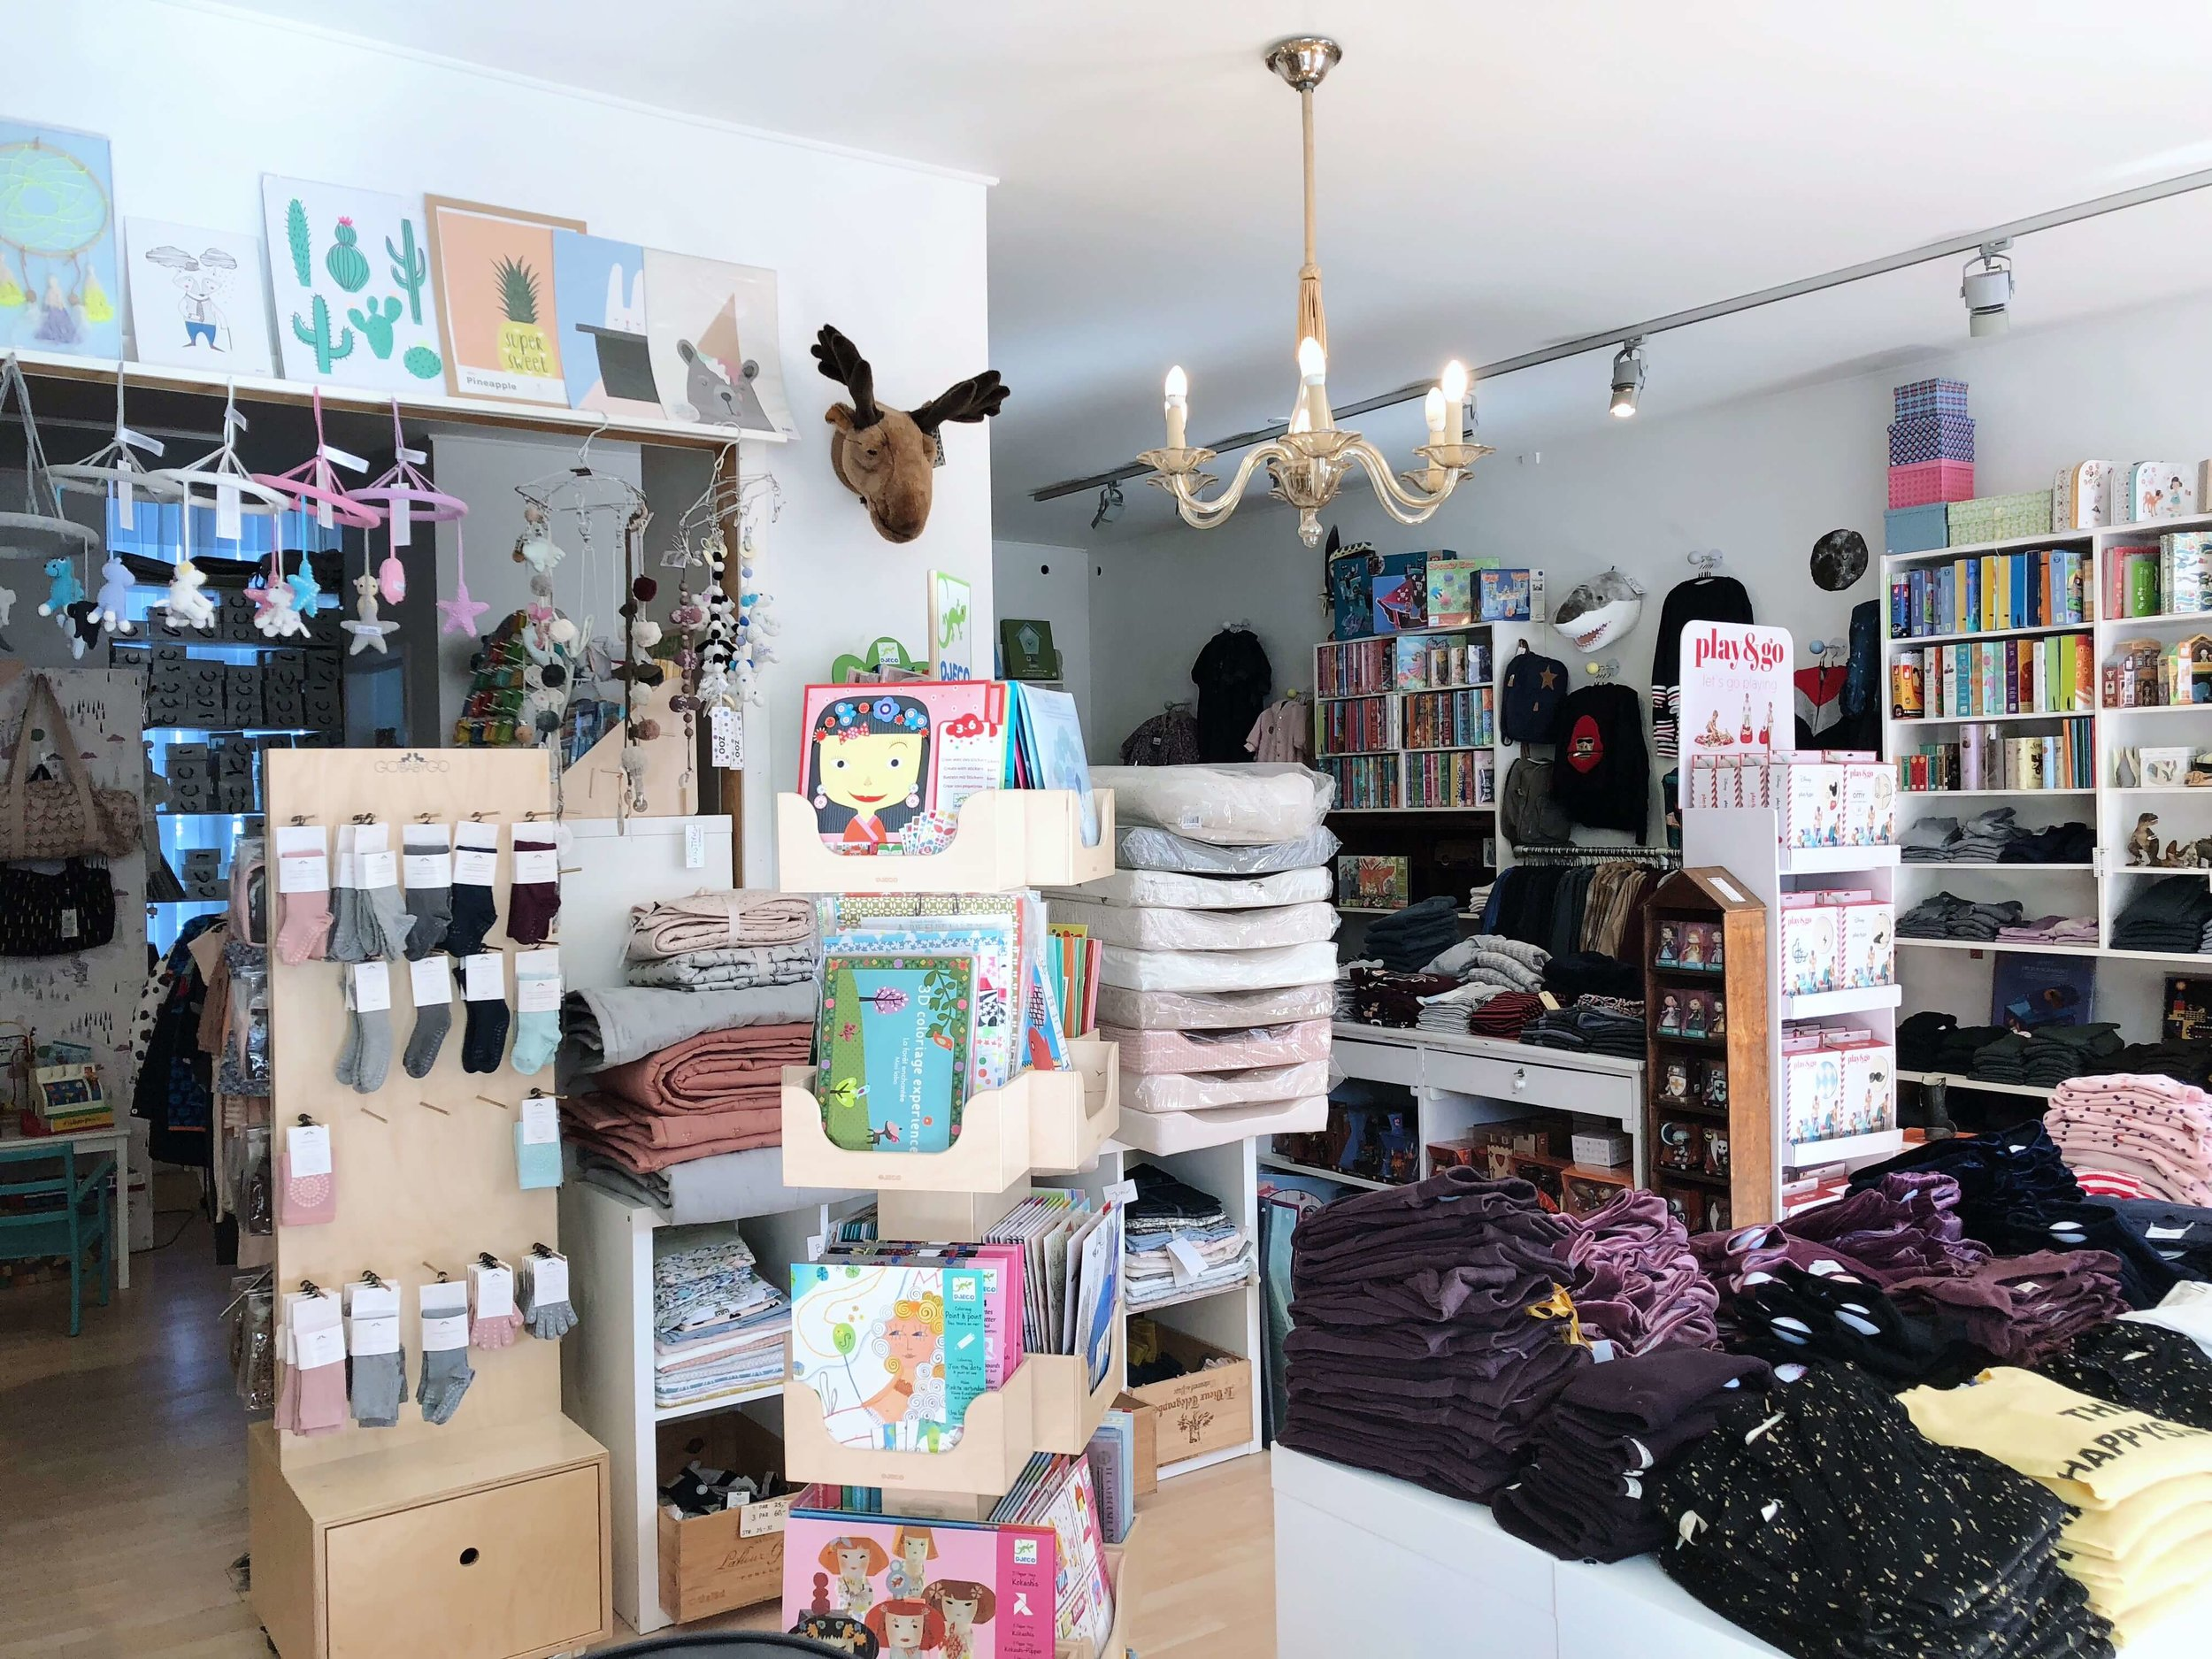 Barnlil' had the cutest clothes, bags, shoes, books, toys, changing pads, blankets, and decor… basically everything you would need to stock your nursery or playroom